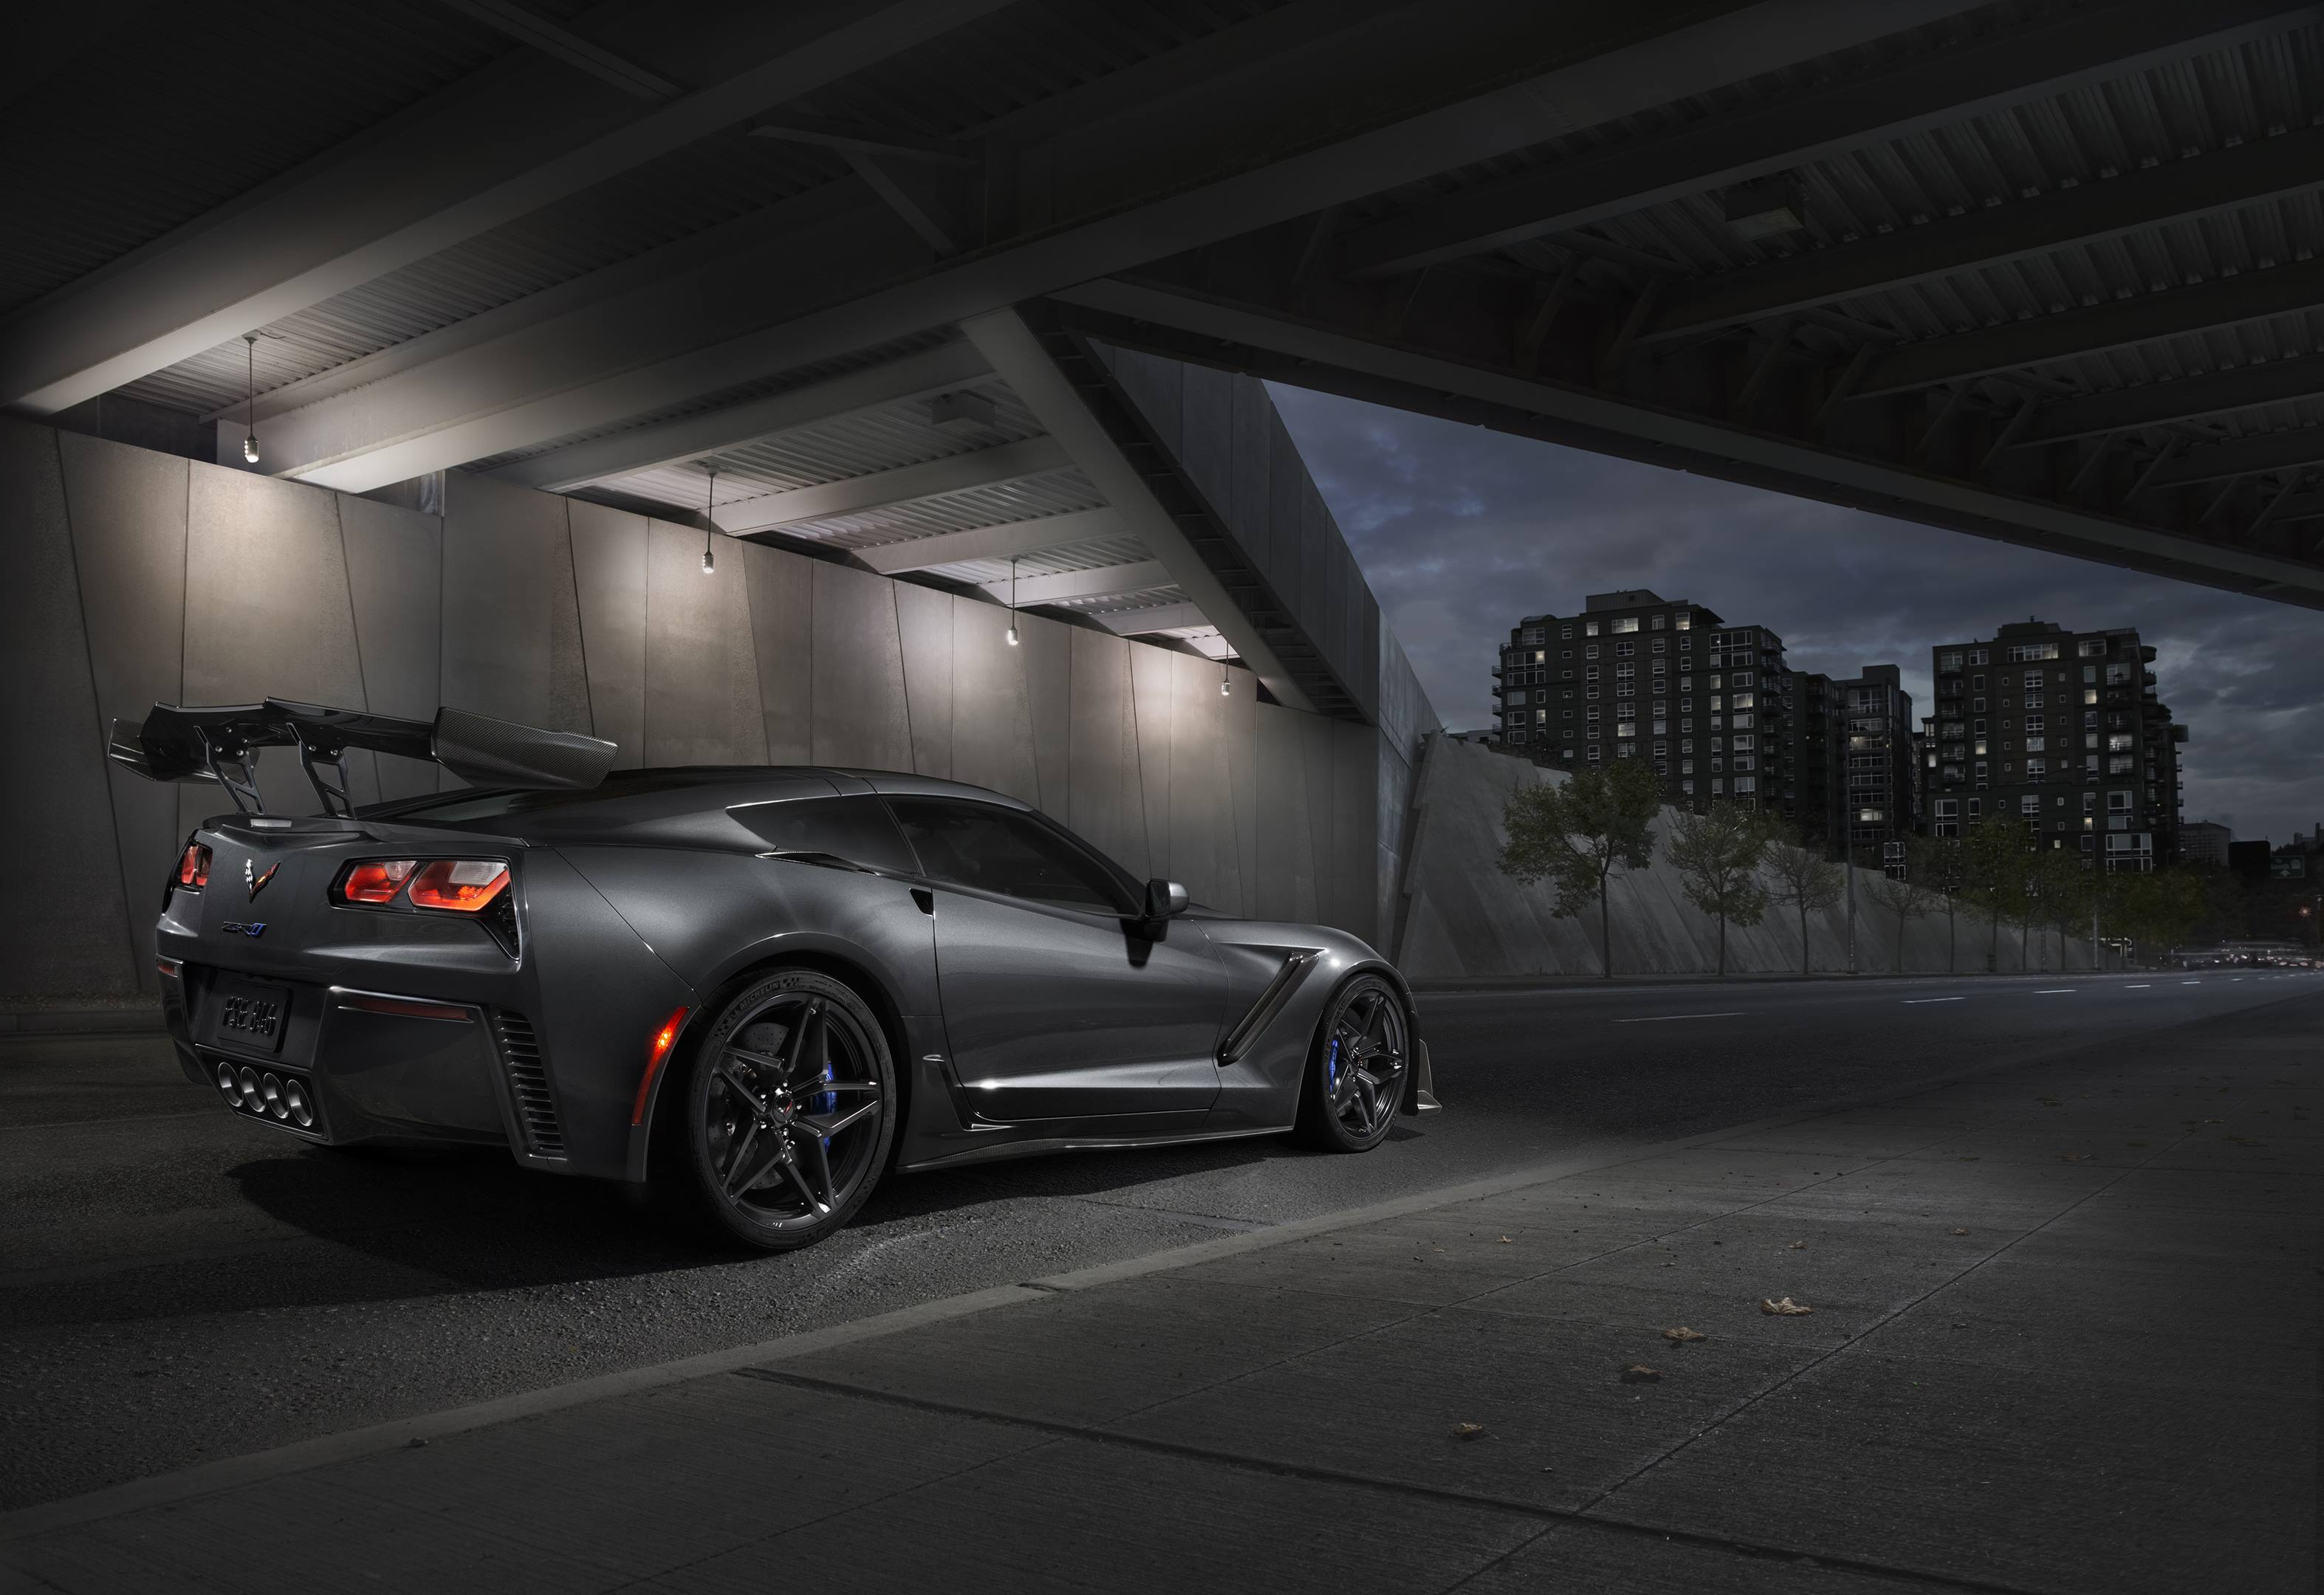 2019 Chevrolet Corvette ZR1 Rear 3/4 Shot